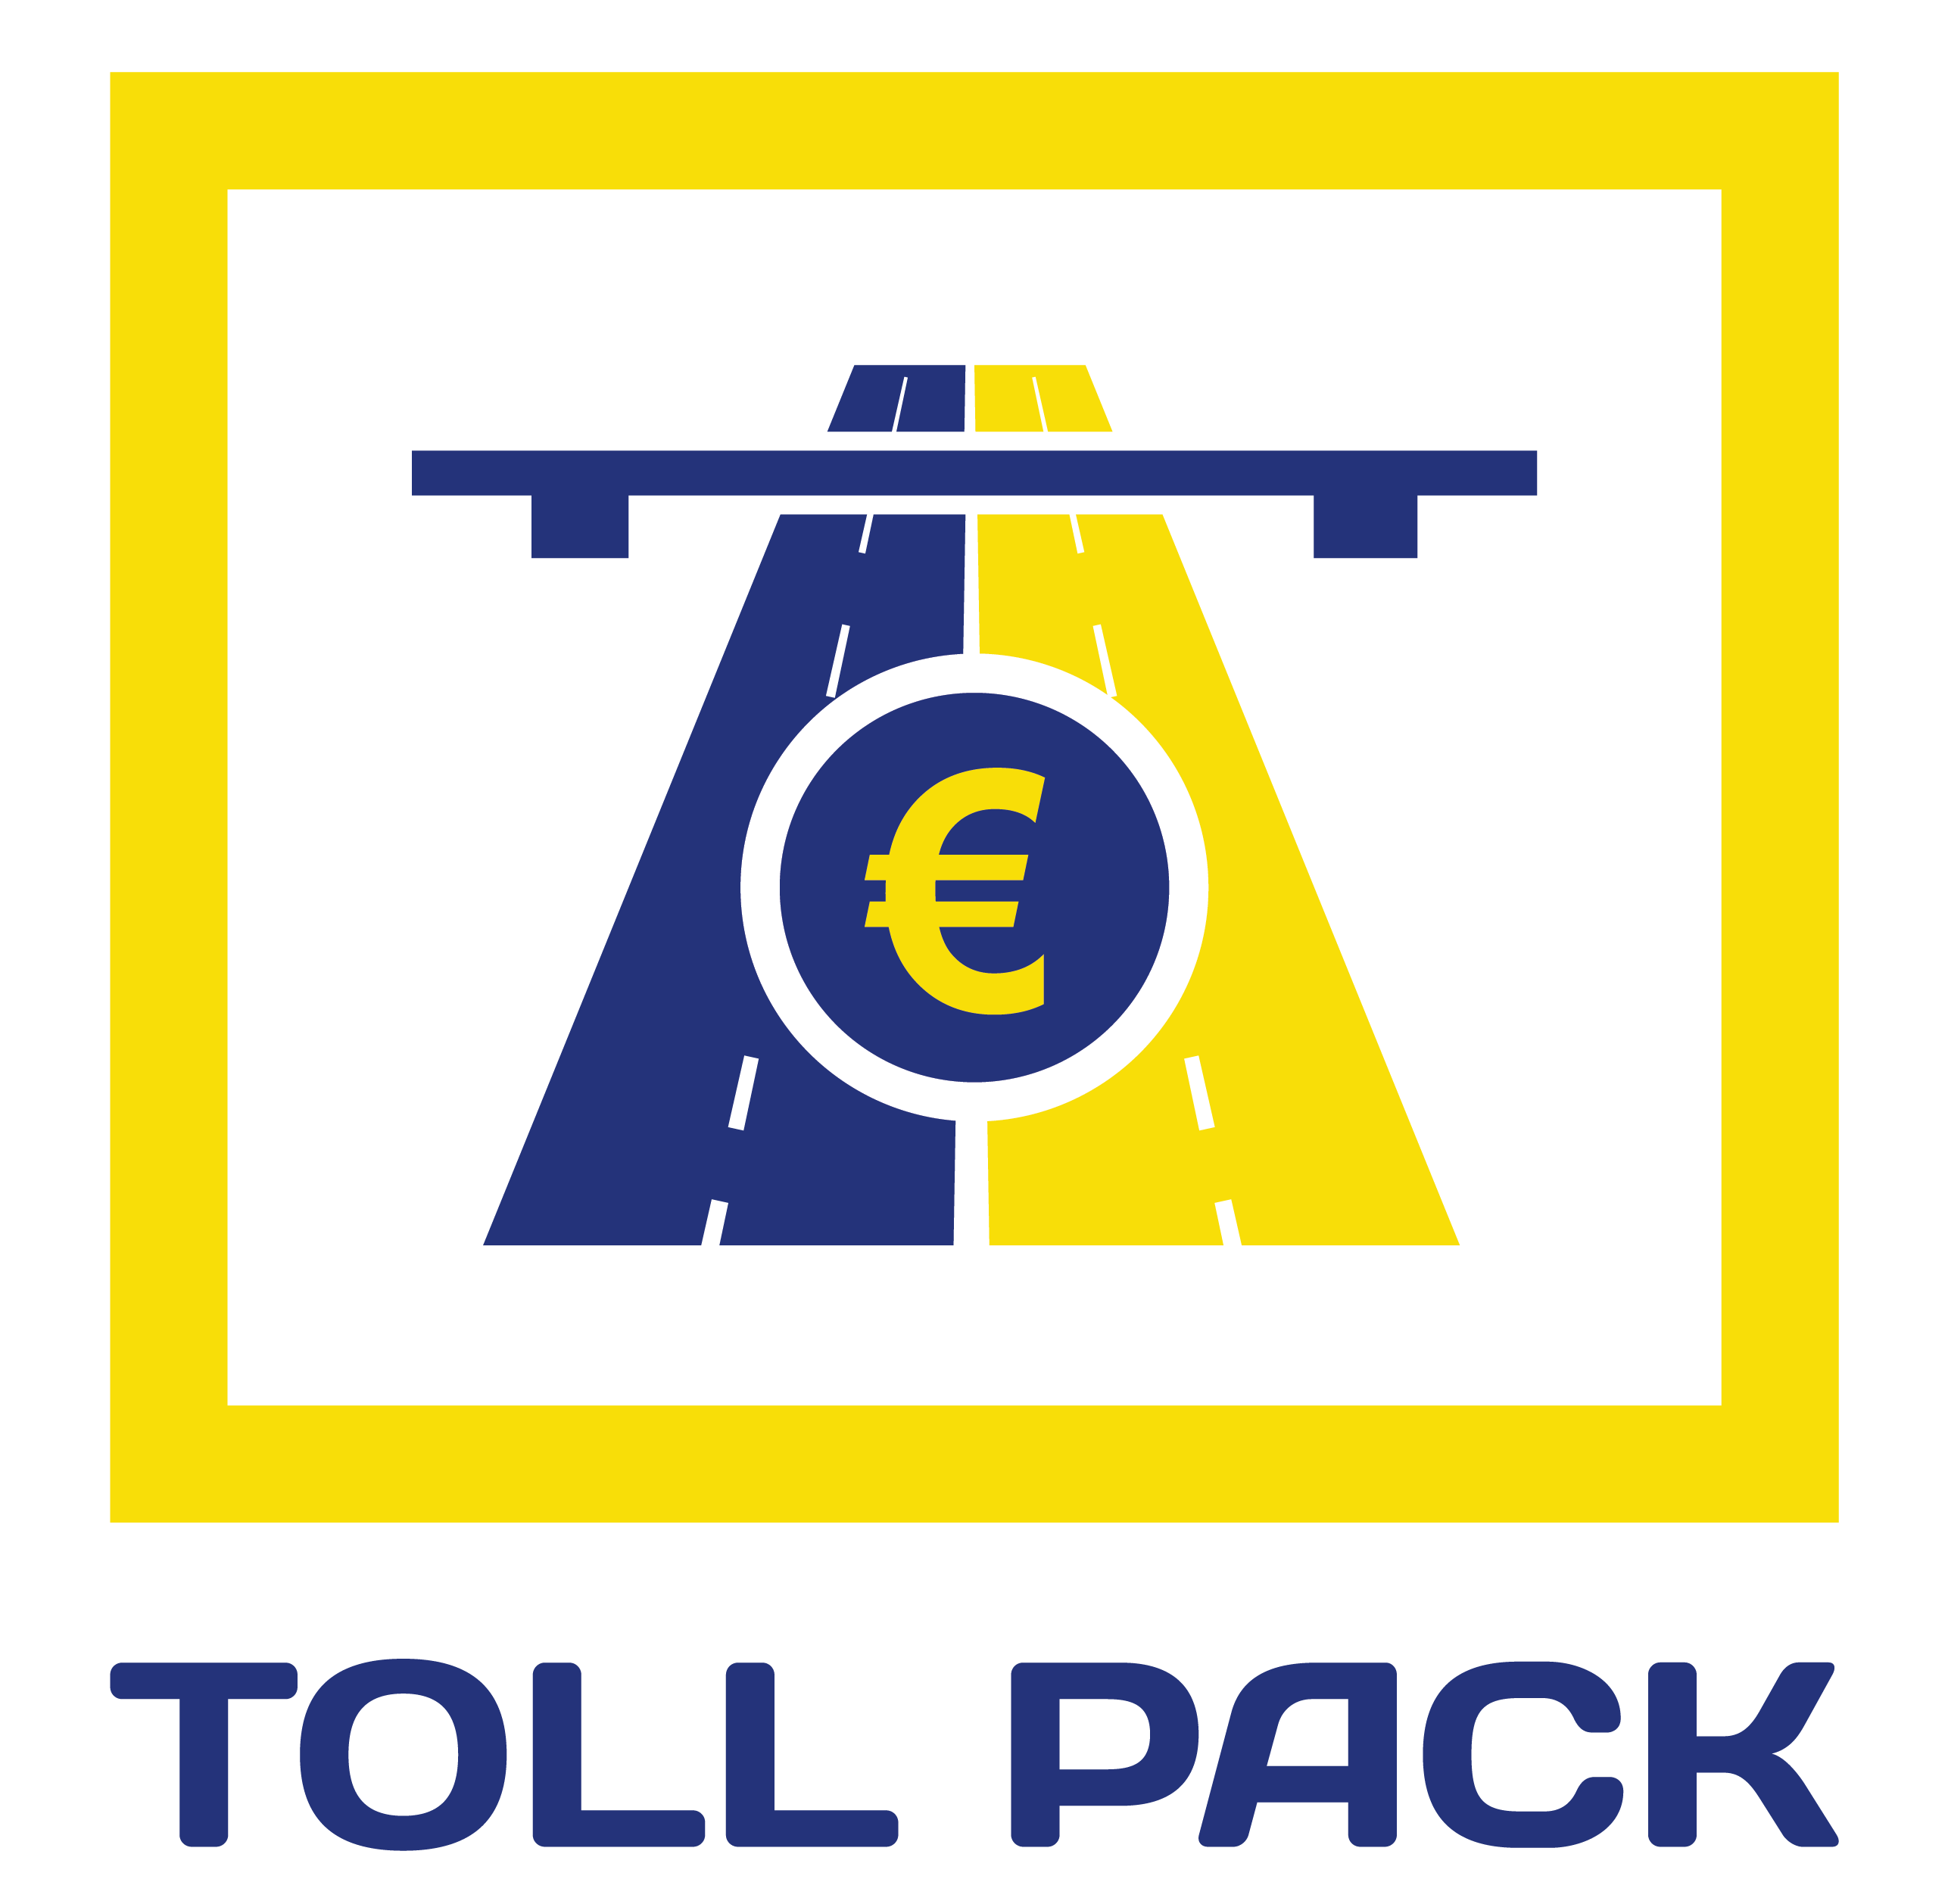 Tollpack